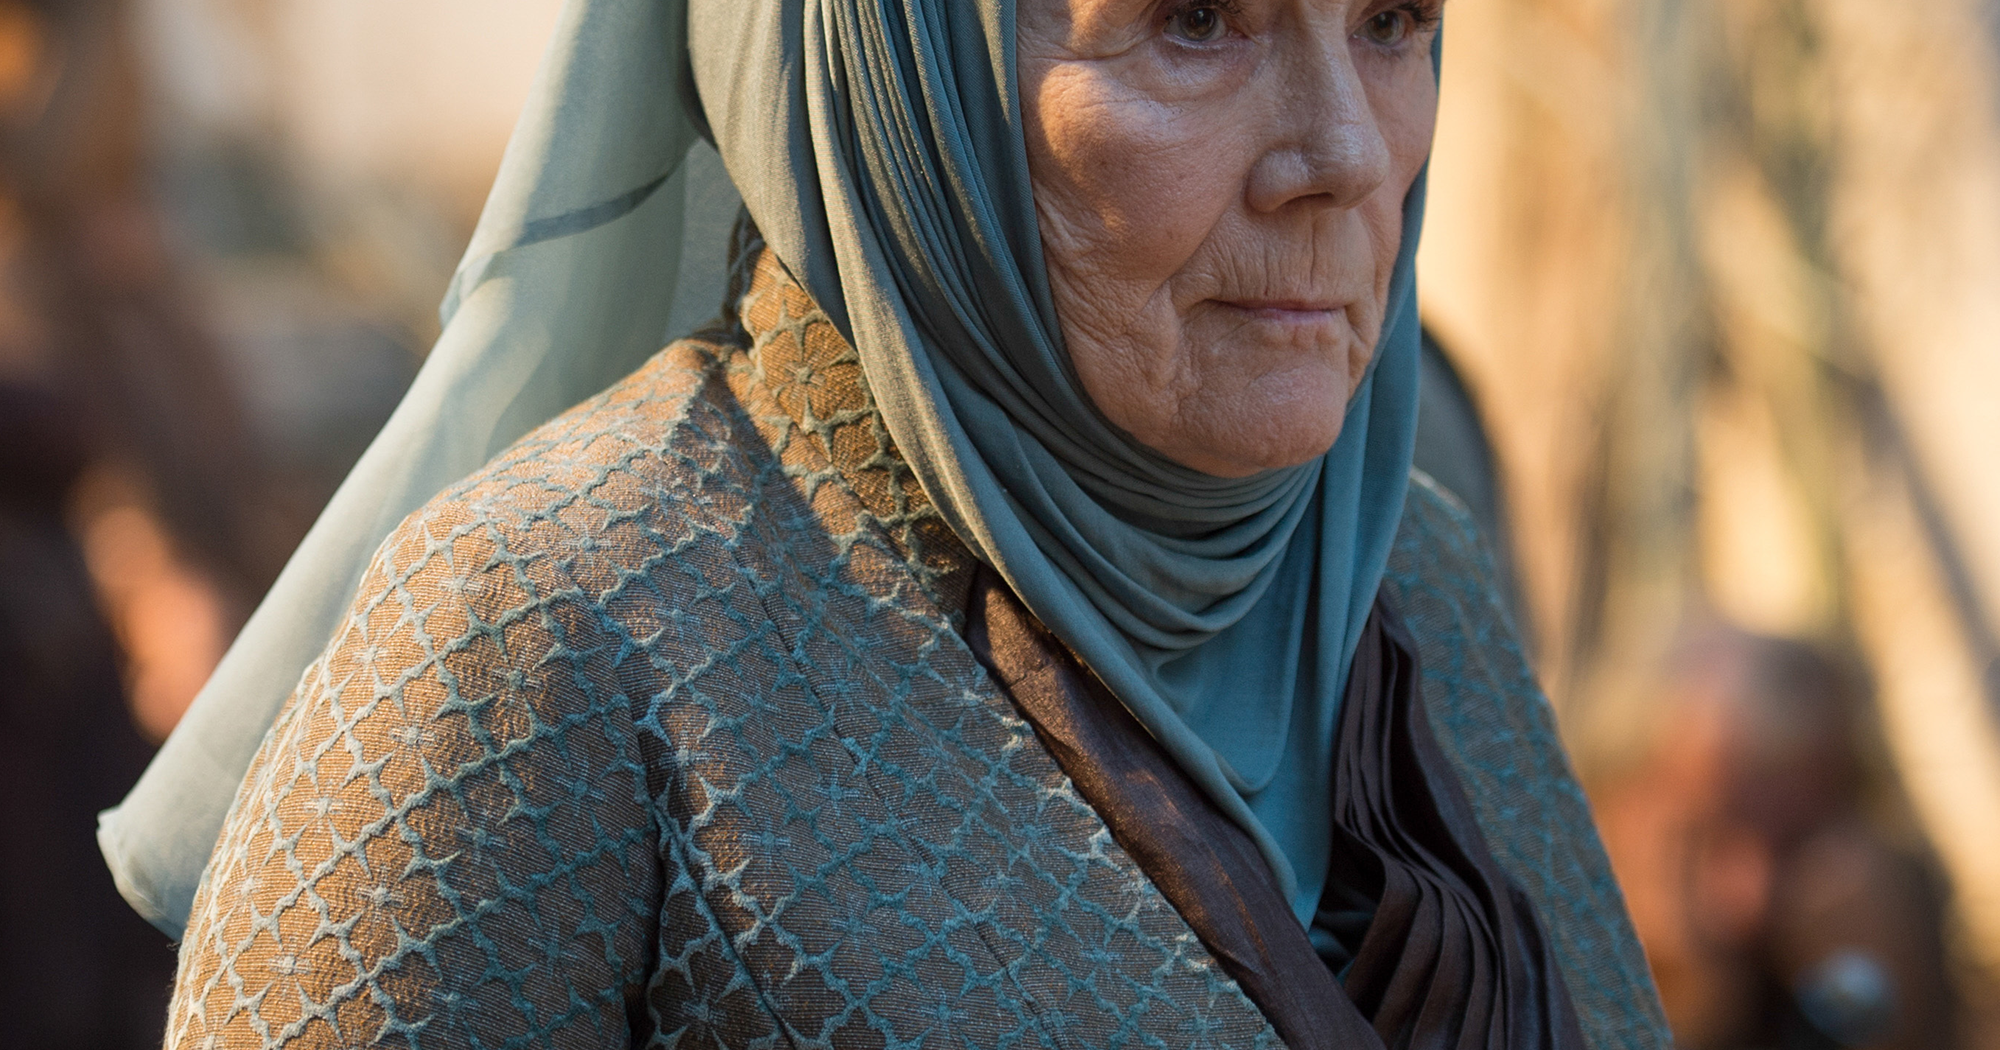 Stop What You're Doing & Enjoy This Photo Of A Young Lady Olenna Tyrell